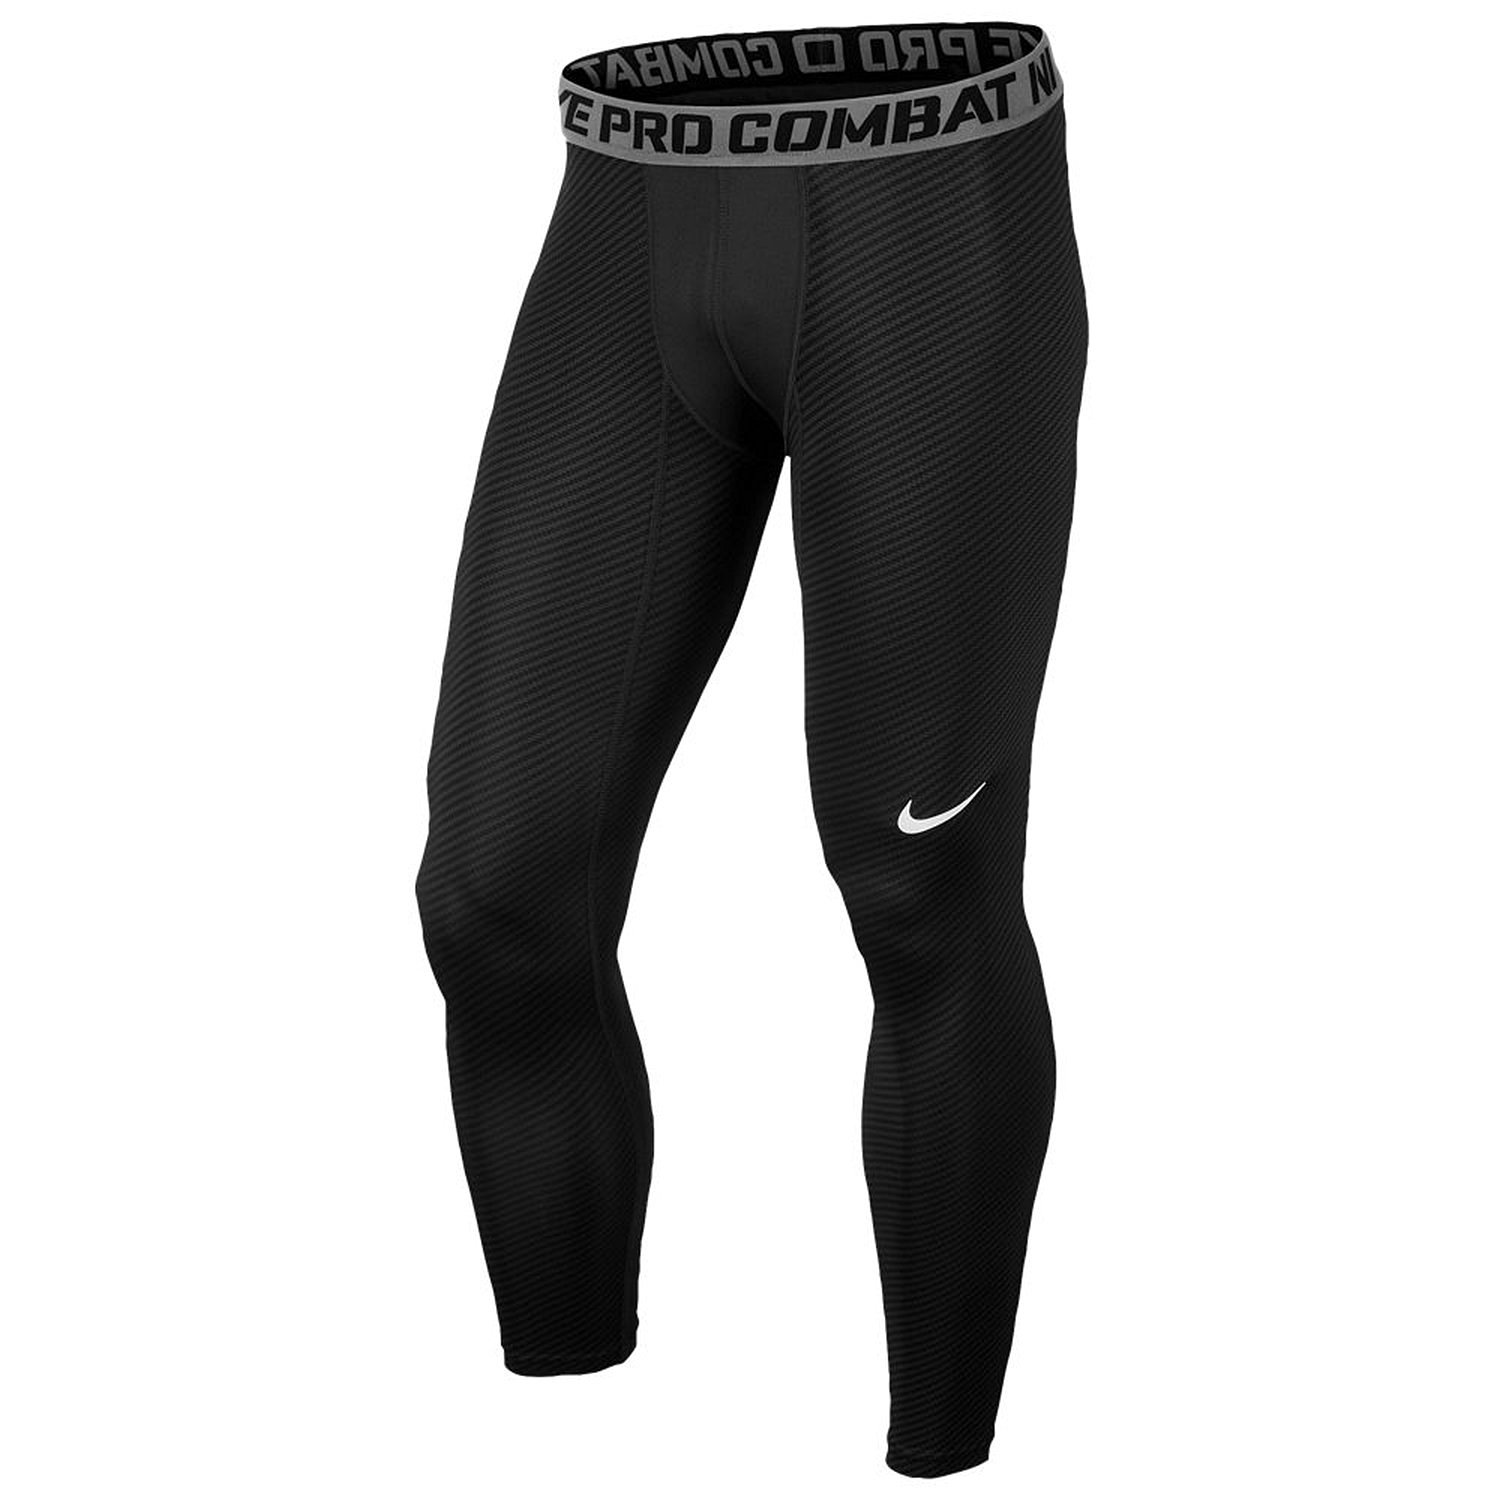 000ebe85 Get Quotations · Nike Mens Dri Fit Pro Combat Carbon Fiber Compression  Tights Small